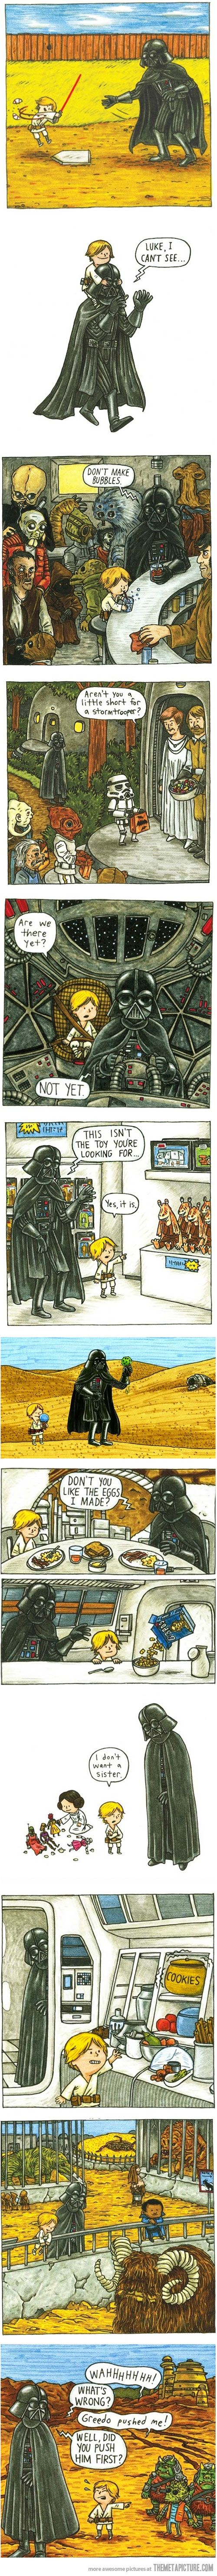 """IF DARTH VADER HAD BEEN A GOOD FATHER"" Scroll back up through the pics with this in mind. Too funny . . . May the force be with you."